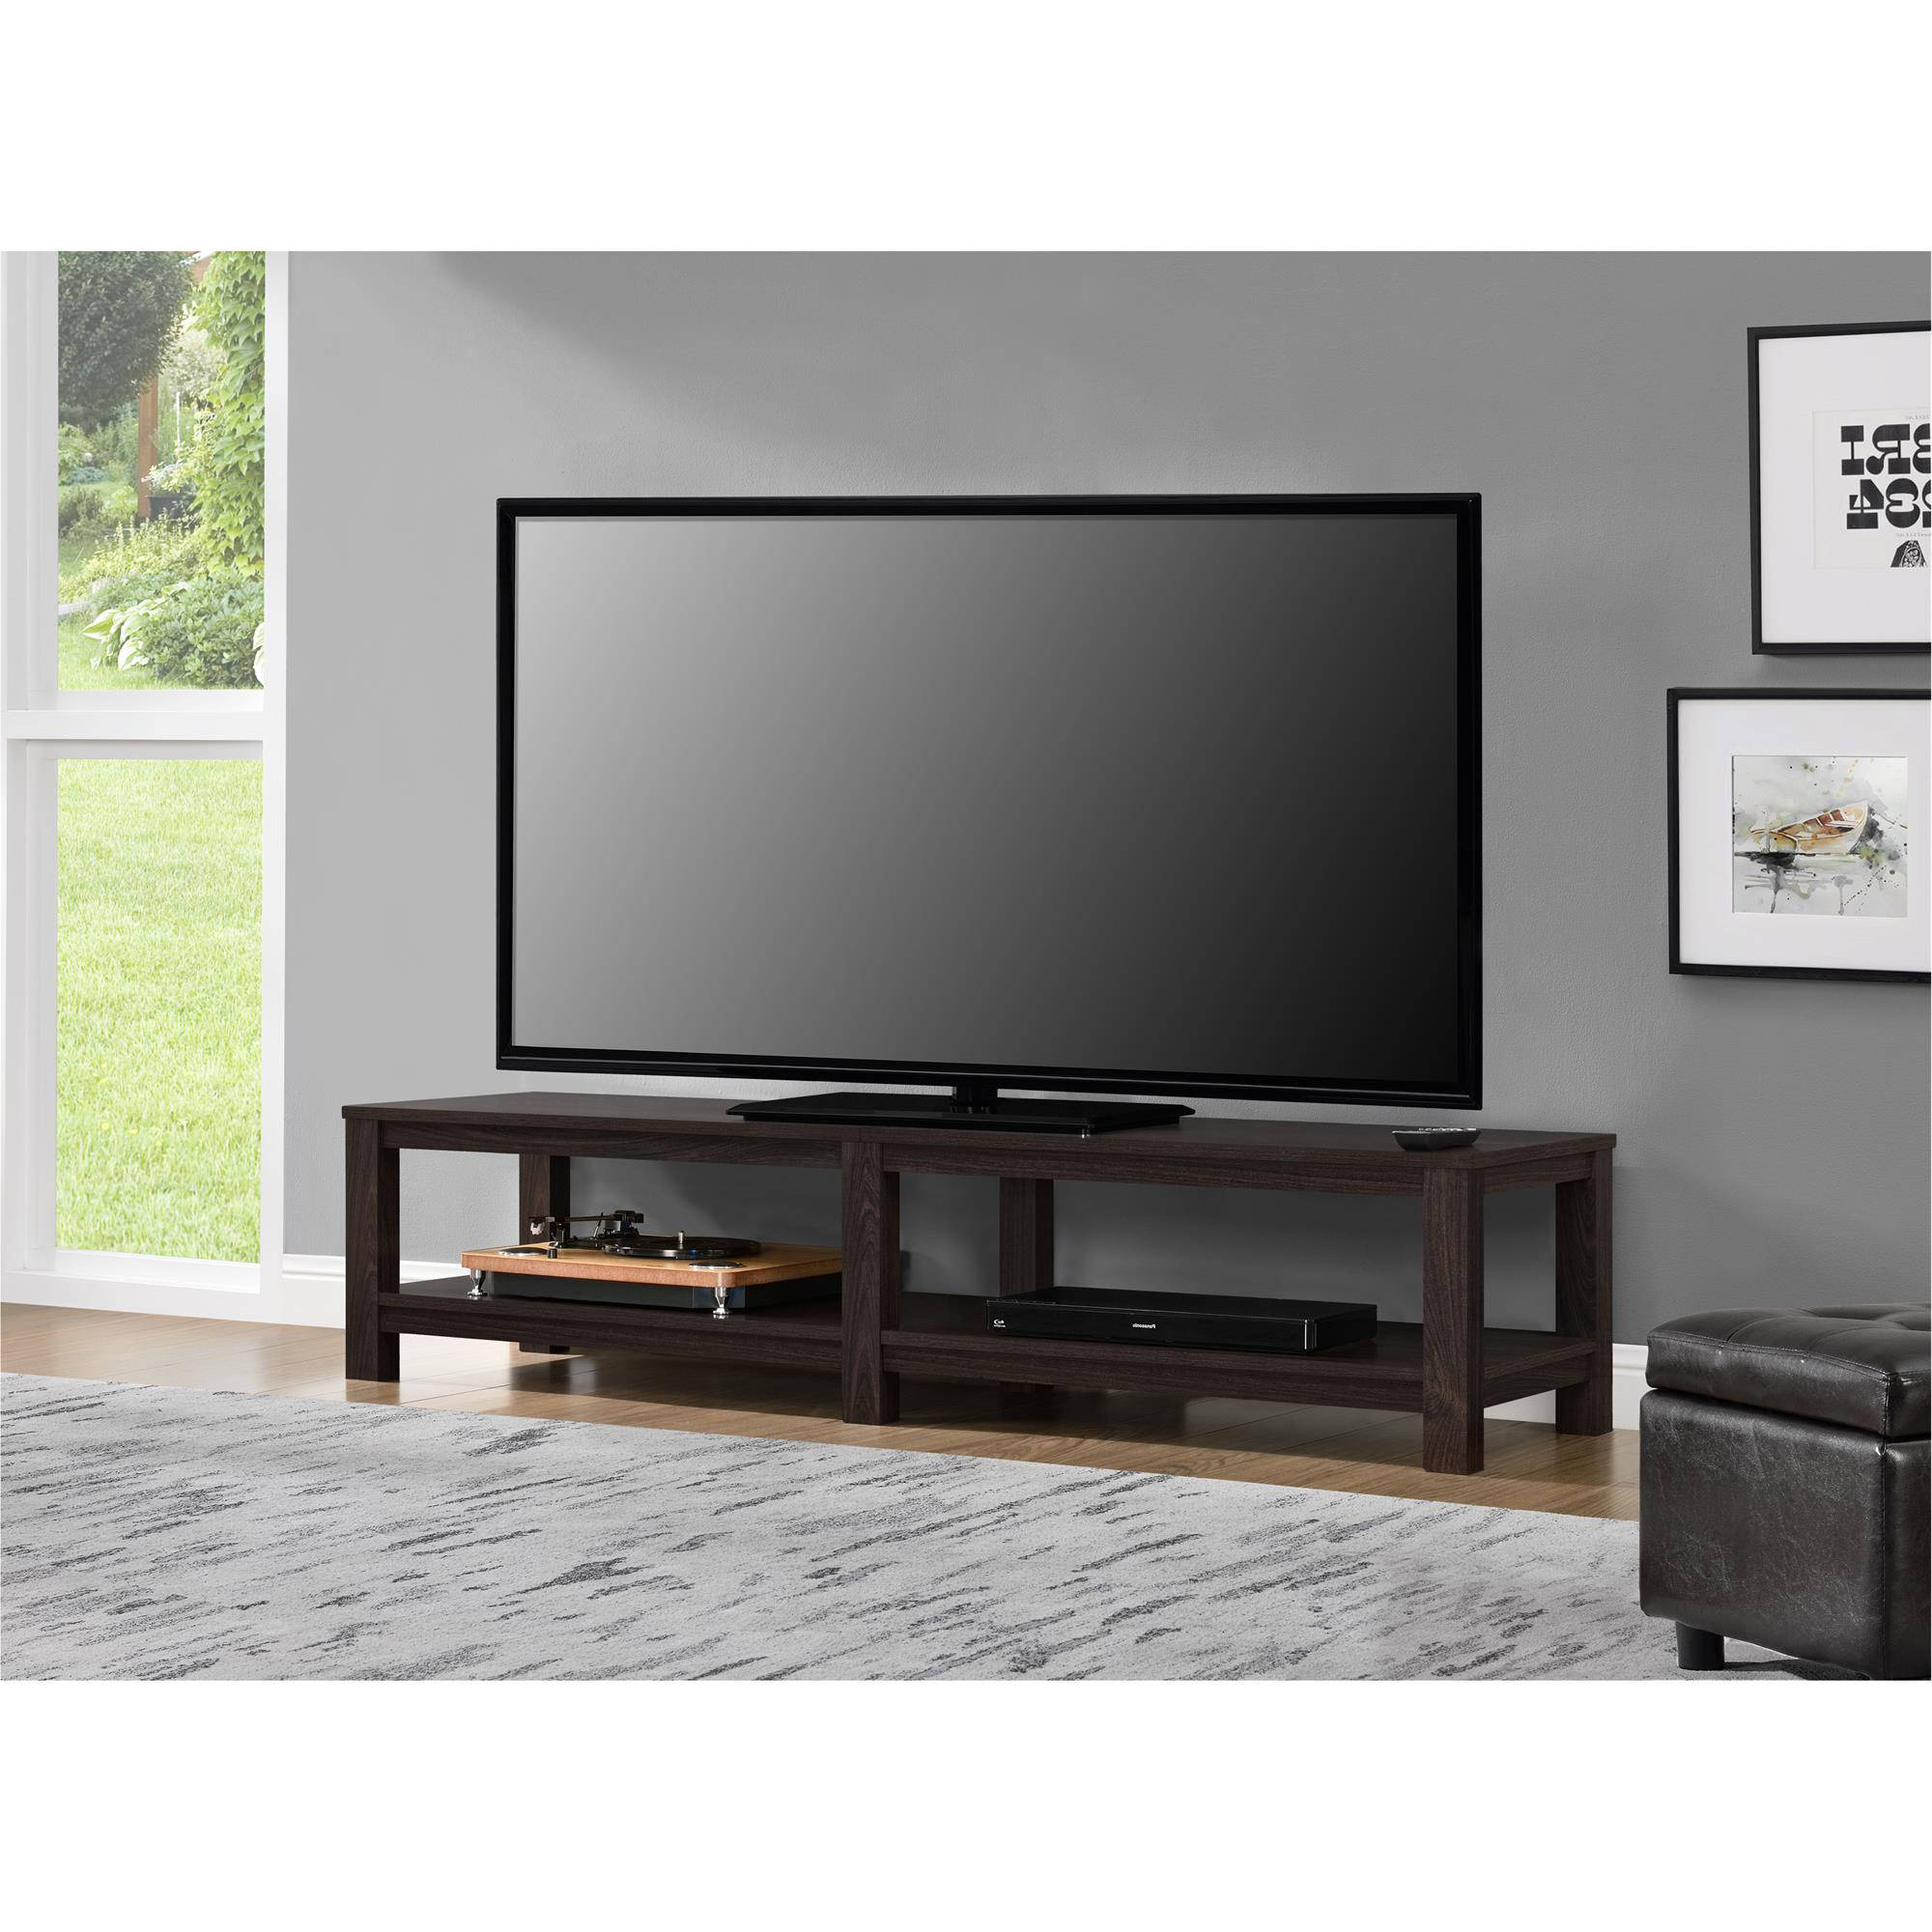 "Favorite Mainstays Parsons Tv Stand For Tvs Up To 65"", Multiple Colors Within Tv Tables (Gallery 10 of 20)"